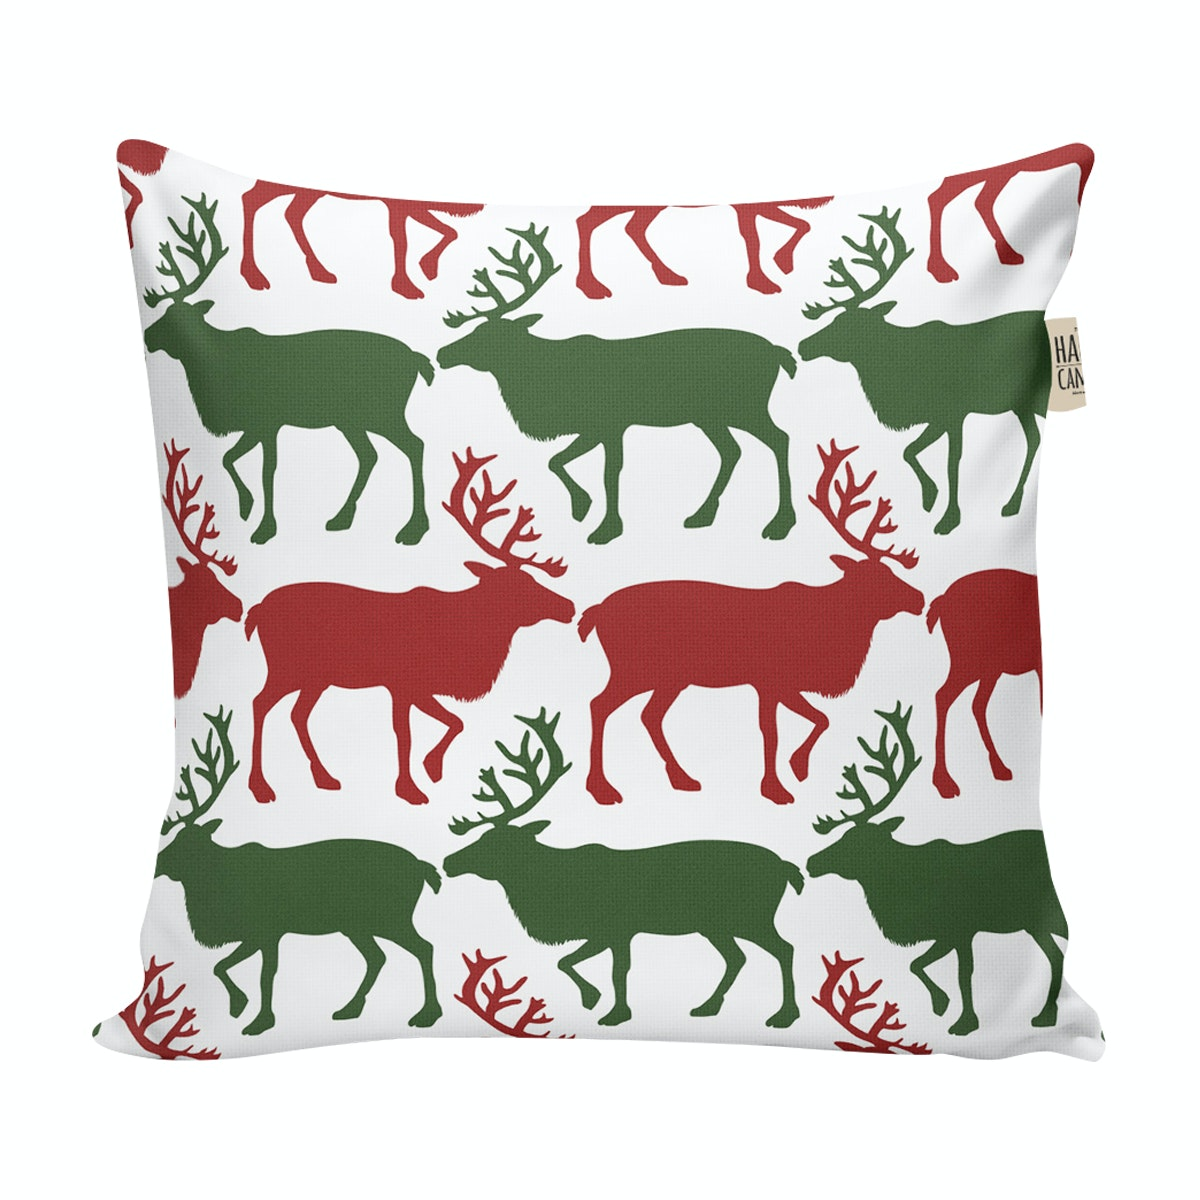 The Happy Camper Christmas Reindeer - cushion cover